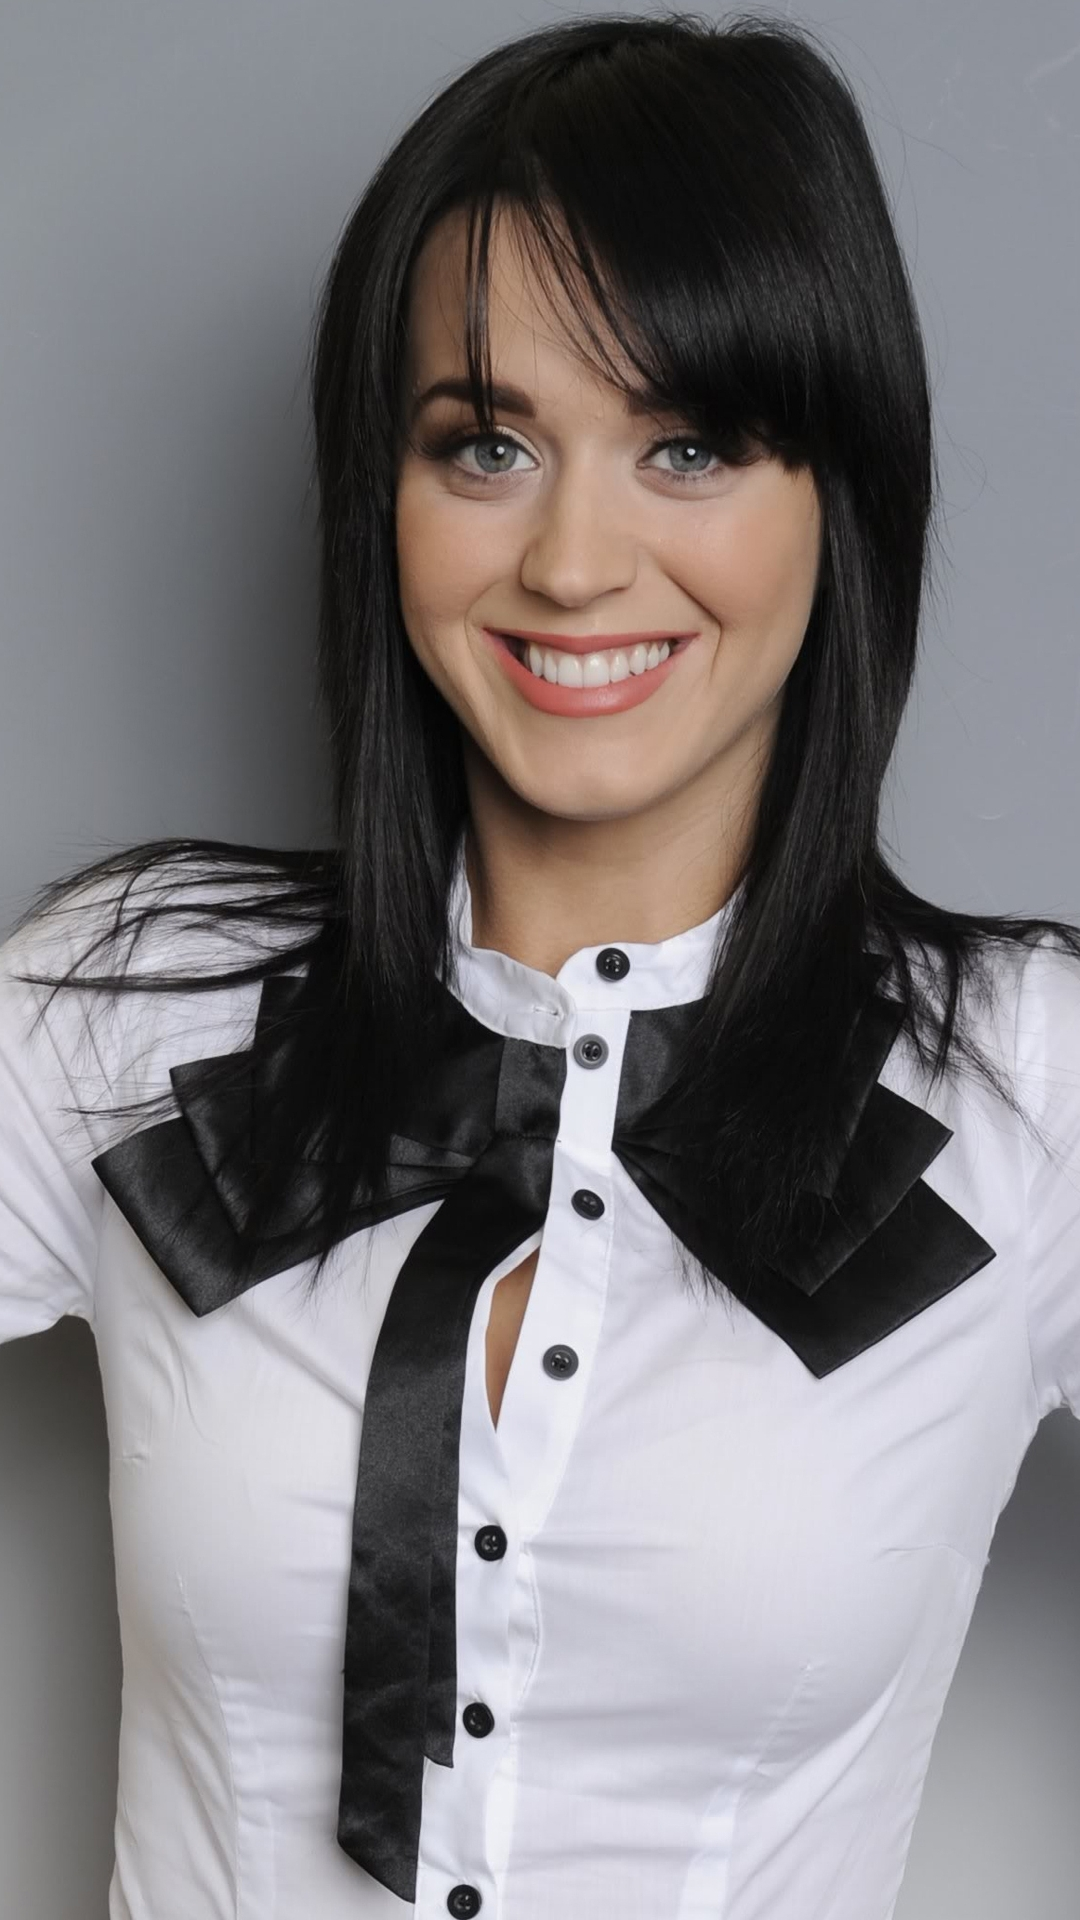 katy perry iphone 5 wallpaper the